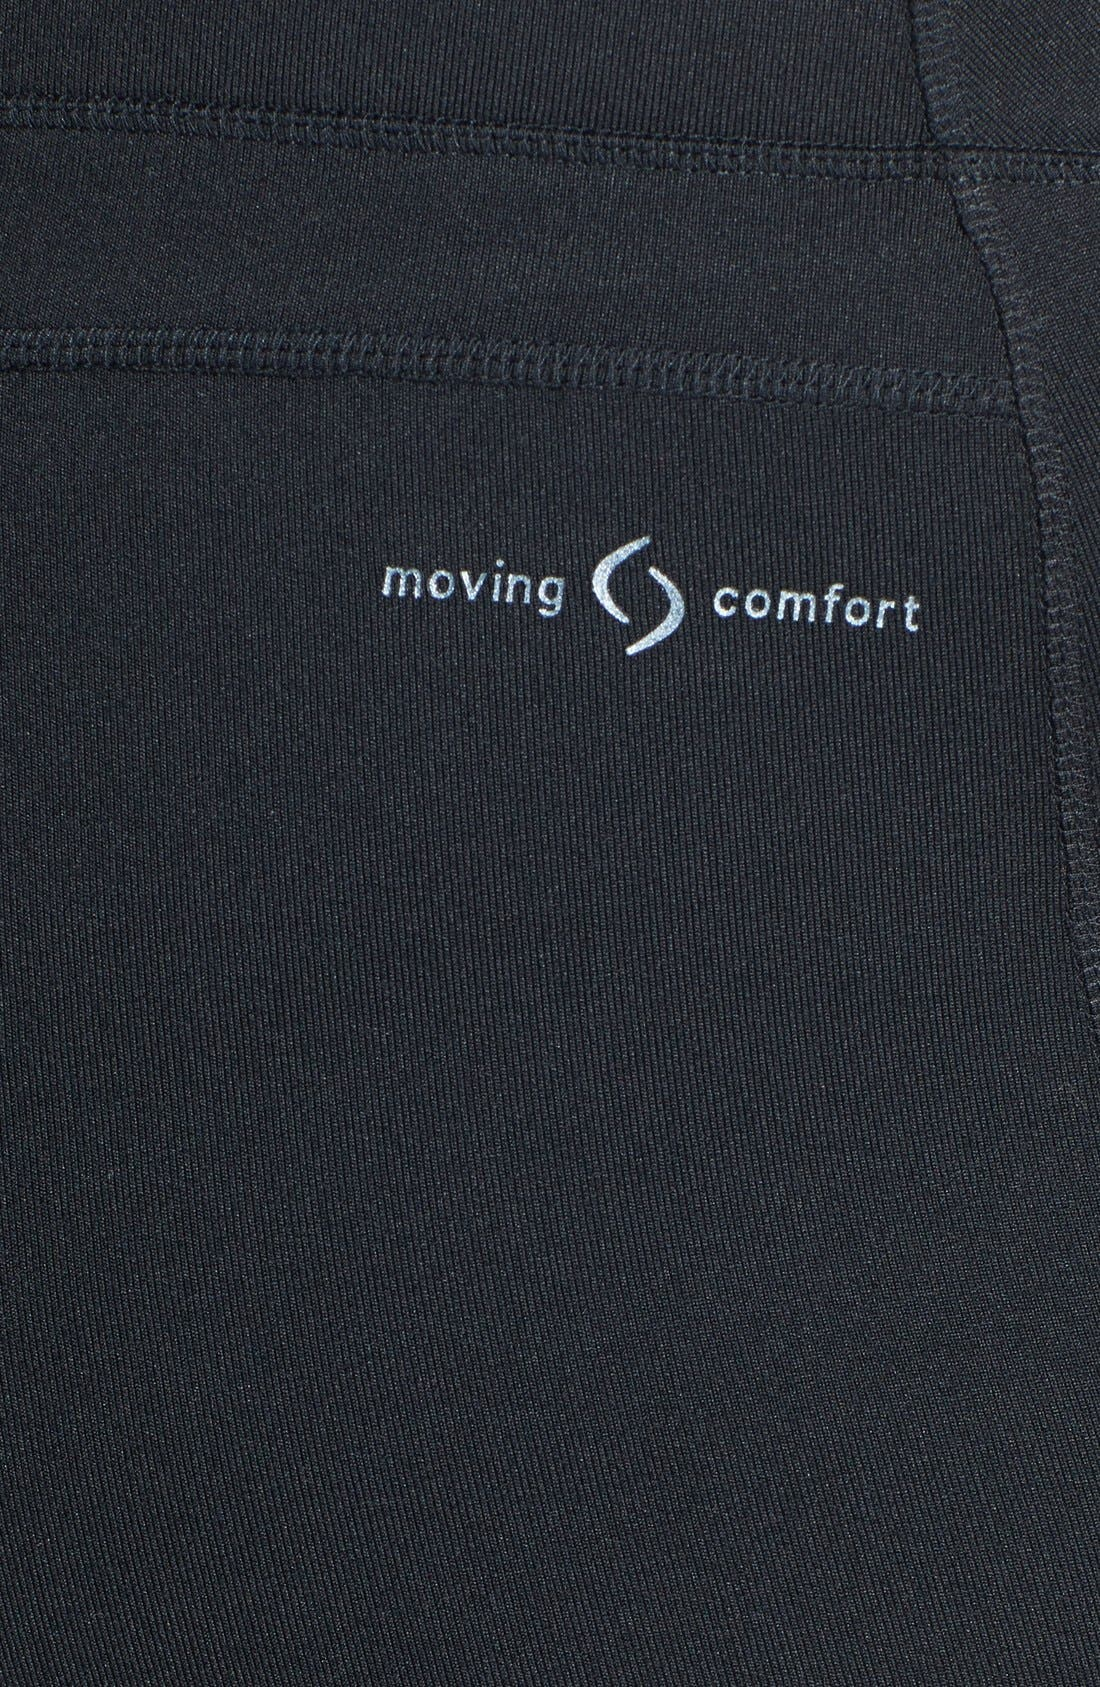 Alternate Image 4  - Moving Comfort 'Fearless' Pants (UPF 50) (Plus Size)